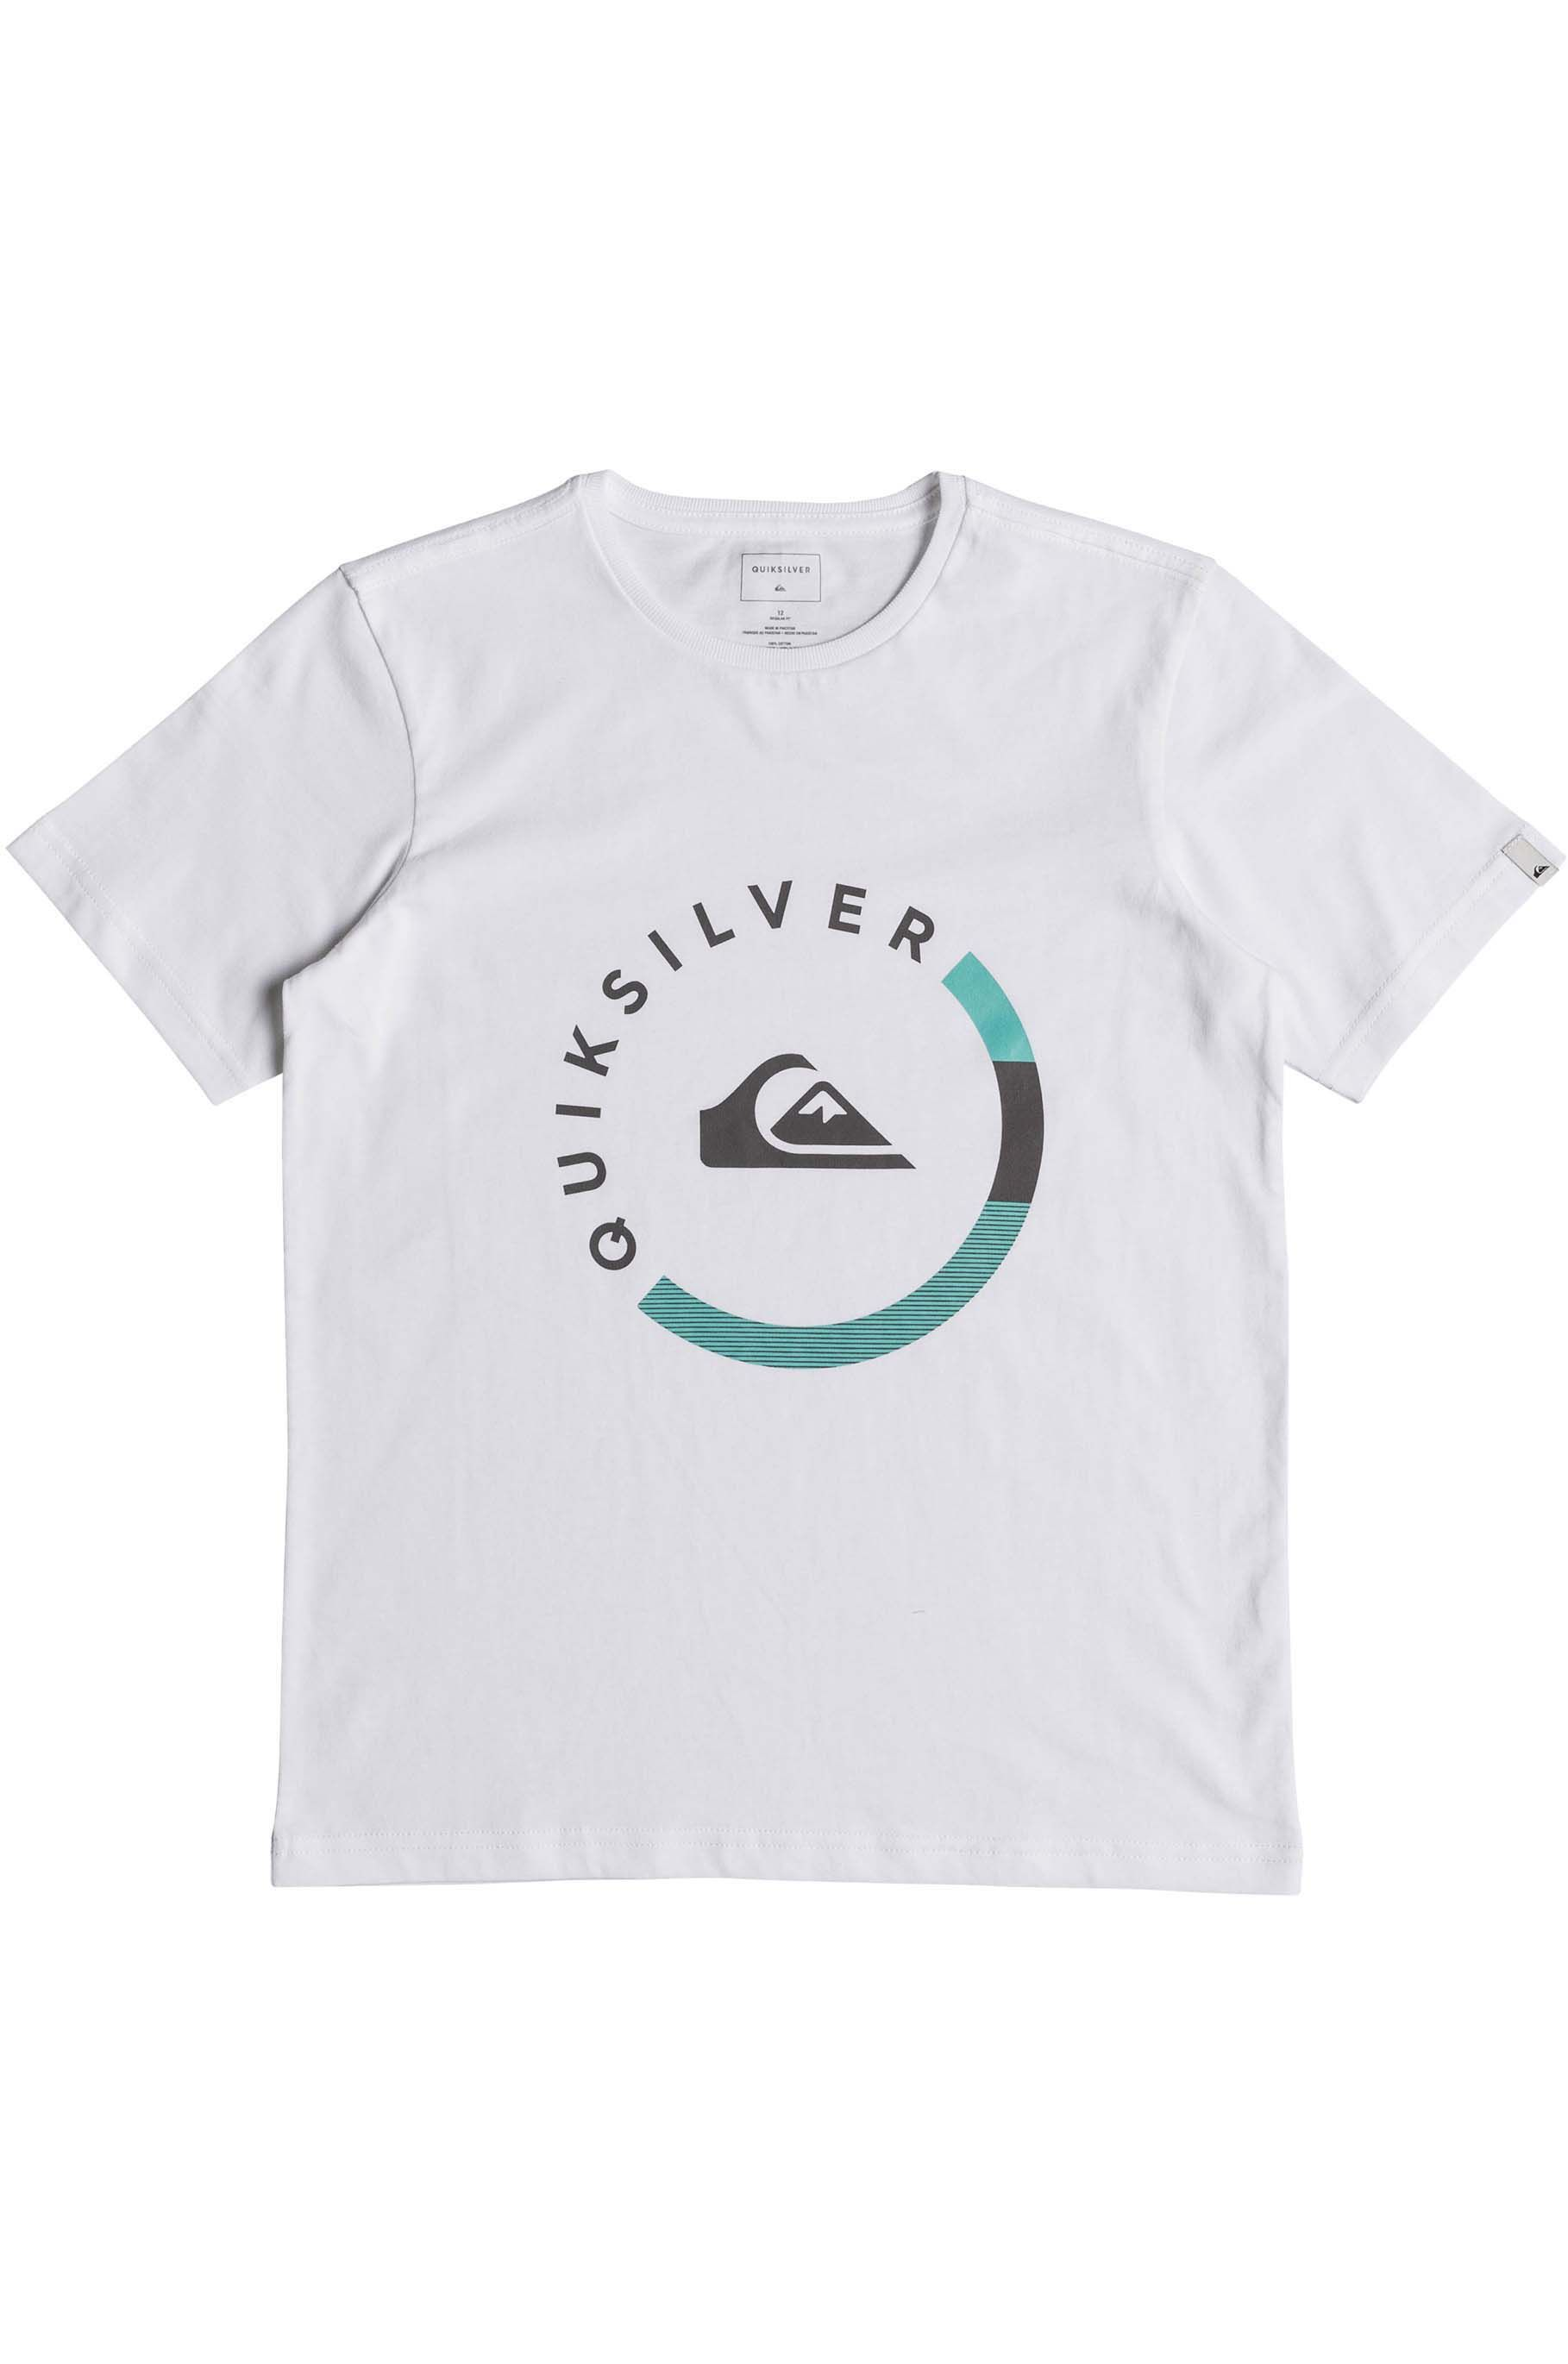 Quiksilver T-Shirt SLAB SESSION White